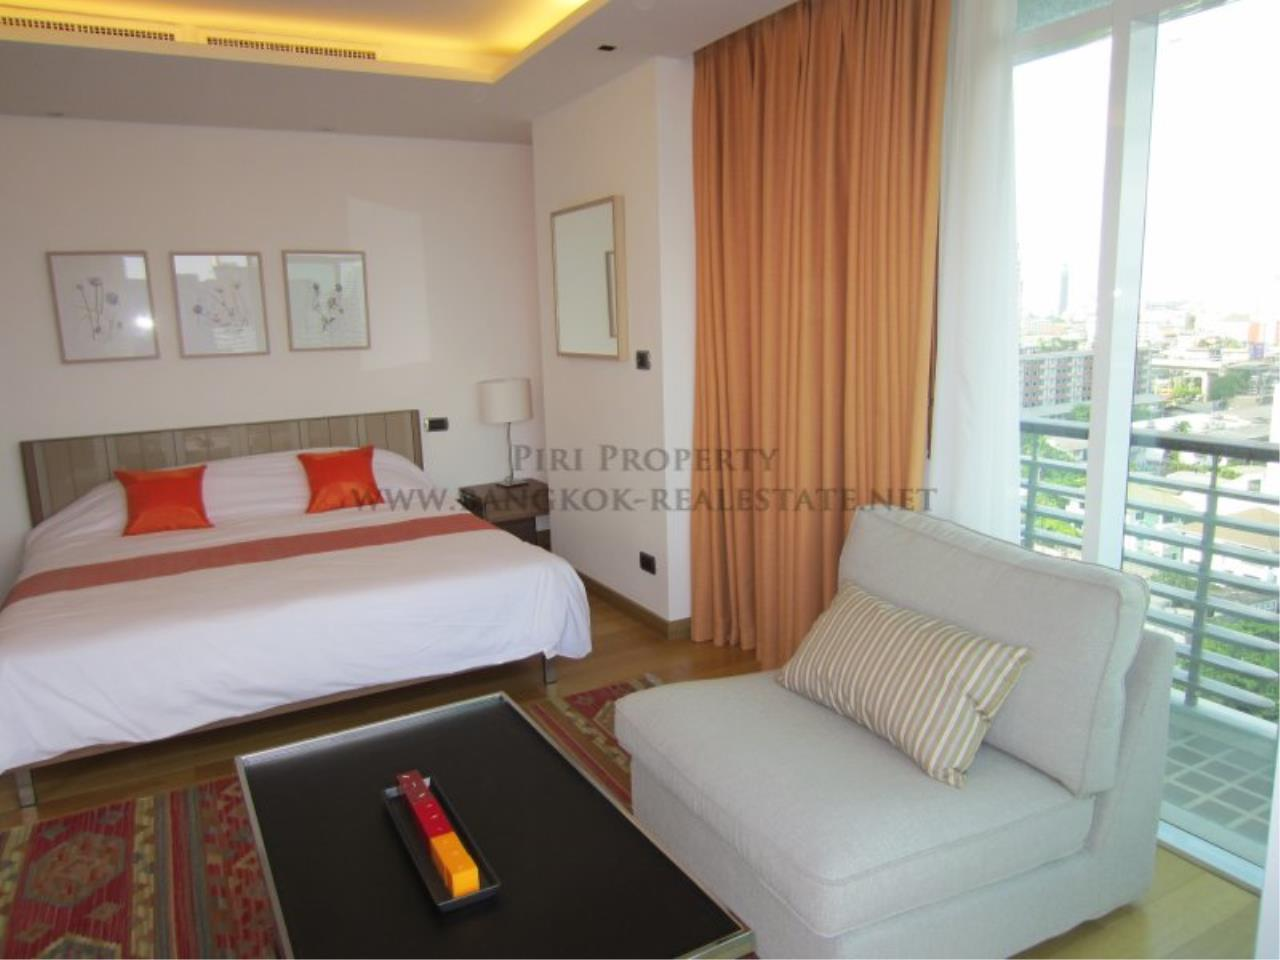 Piri Property Agency's Spacious 2 Bedroom Condo or Rent in Ari - Le Monaco 8